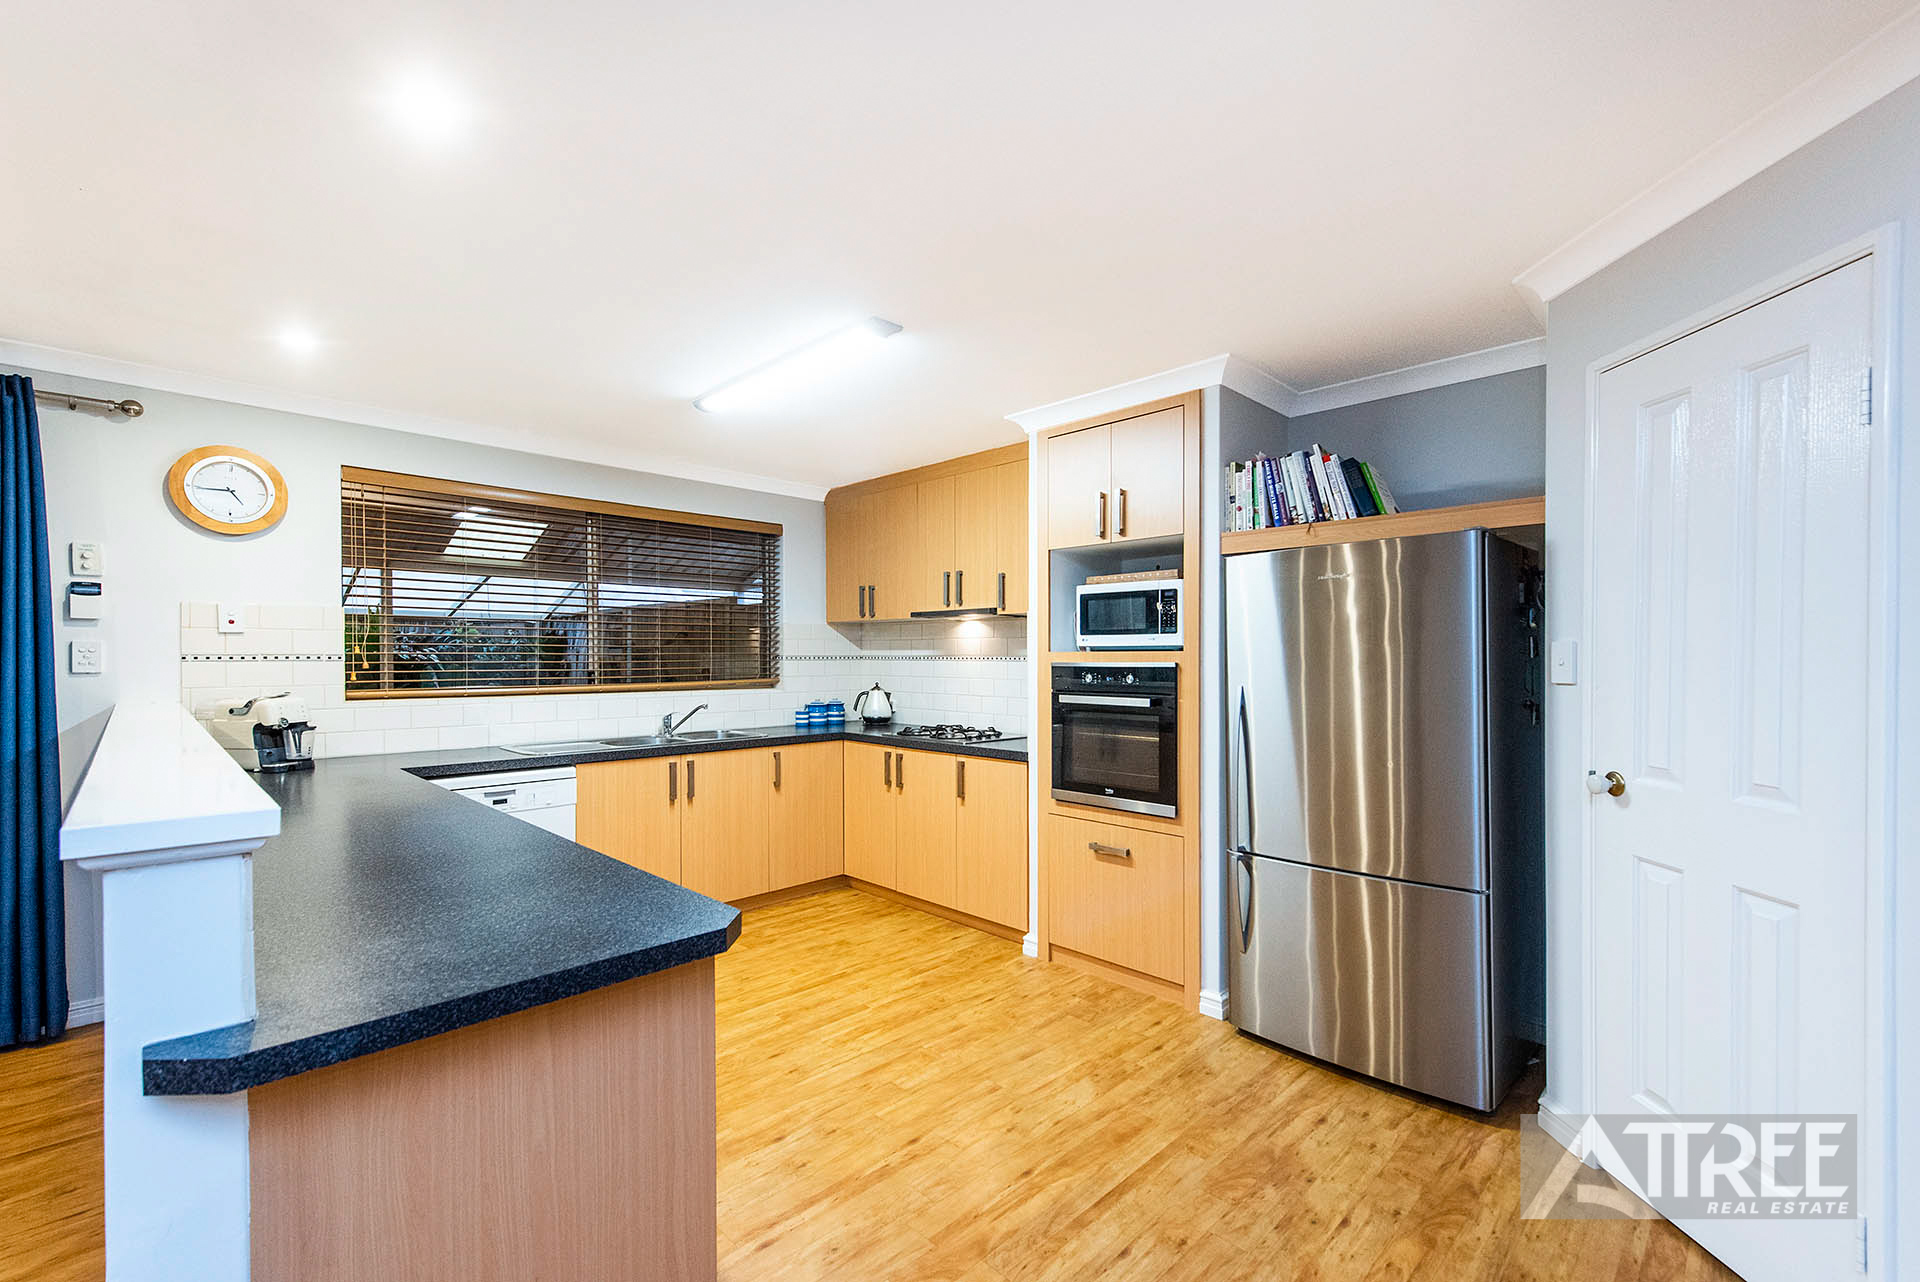 Property for sale in CANNING VALE, 16 Christchurch Boulevard : Attree Real Estate